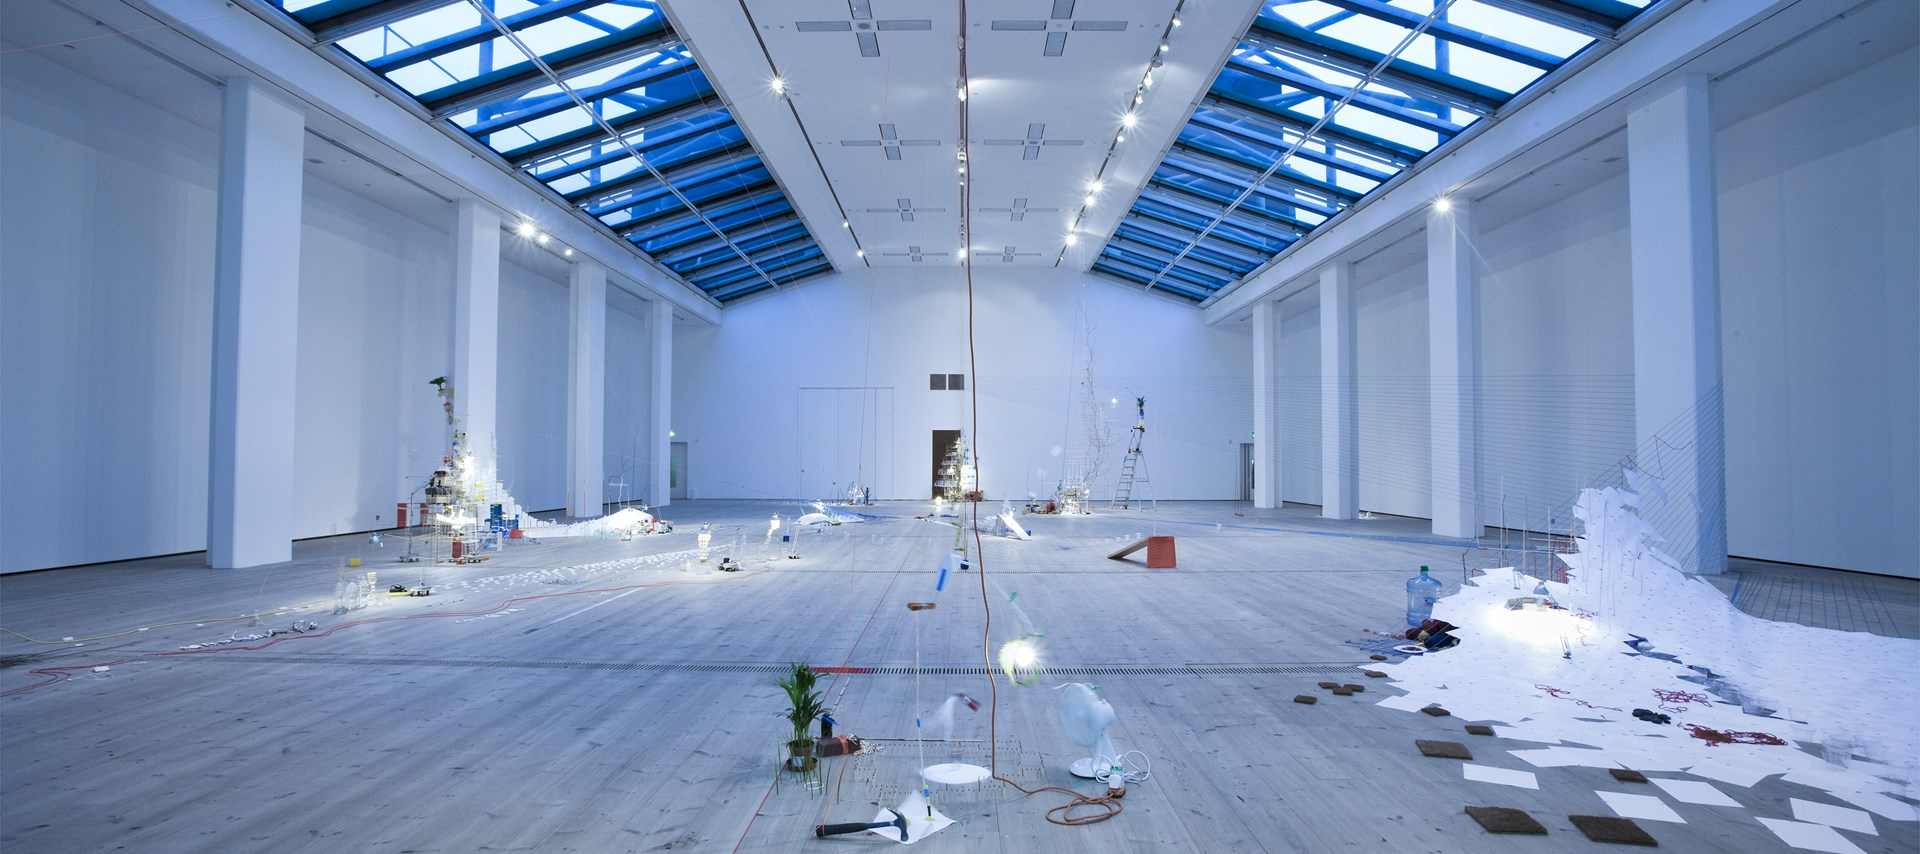 Sarah Sze: Tilting Planet: Exhibition Image (06)